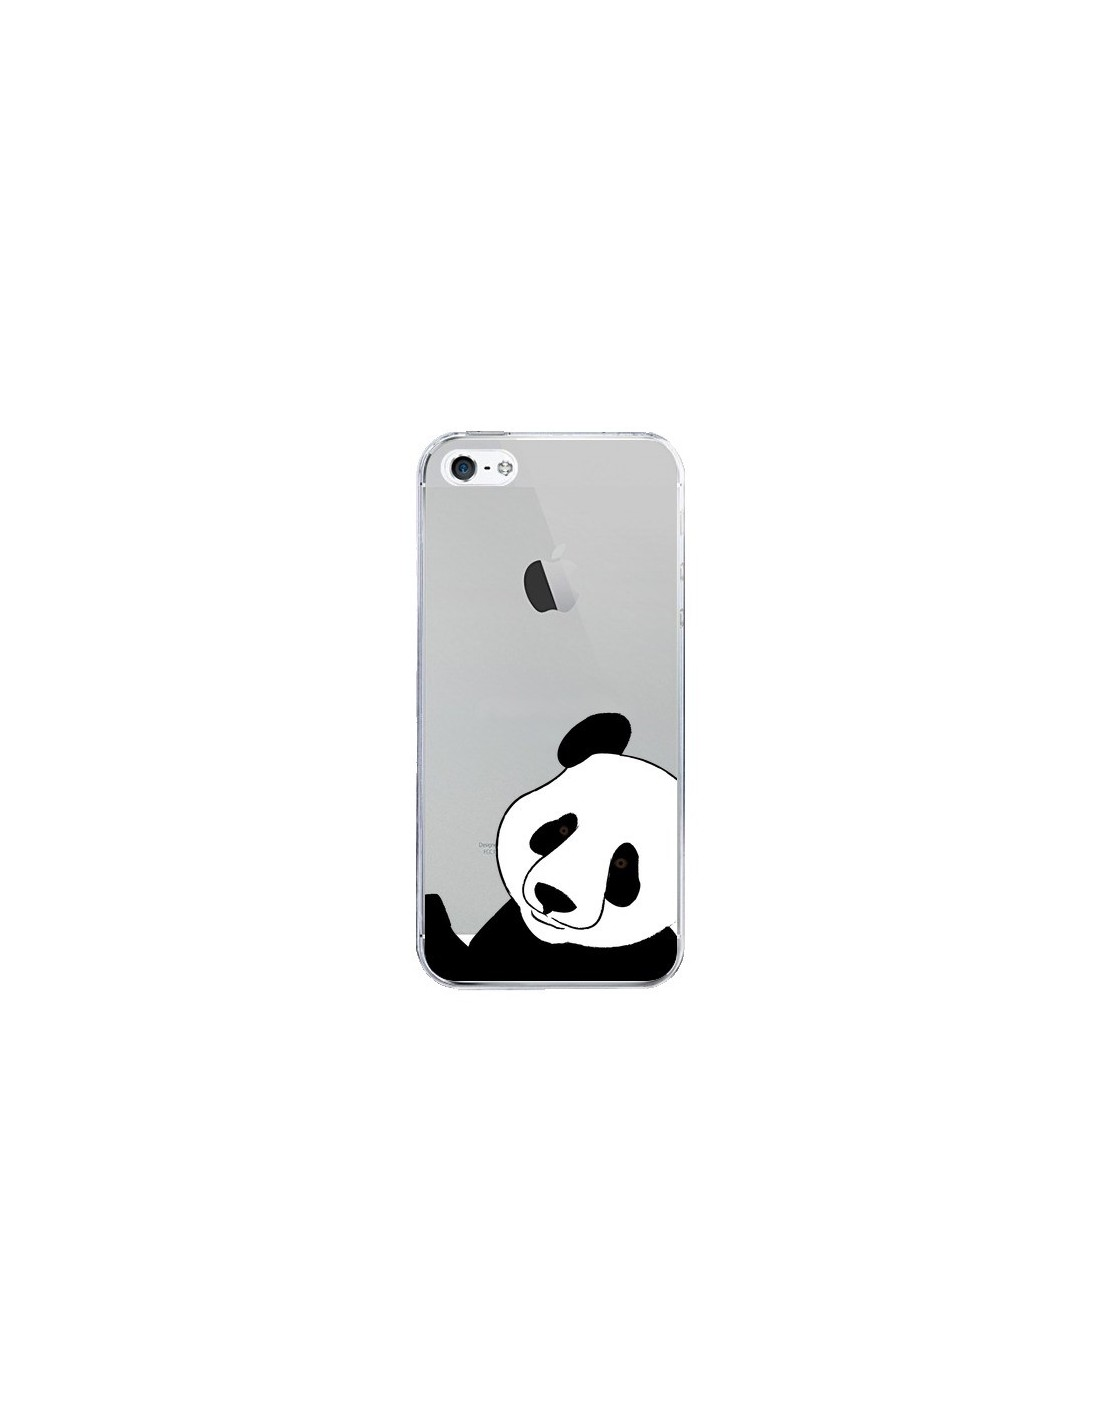 coque panda transparente pour iphone 5 et 5s yohan b. Black Bedroom Furniture Sets. Home Design Ideas